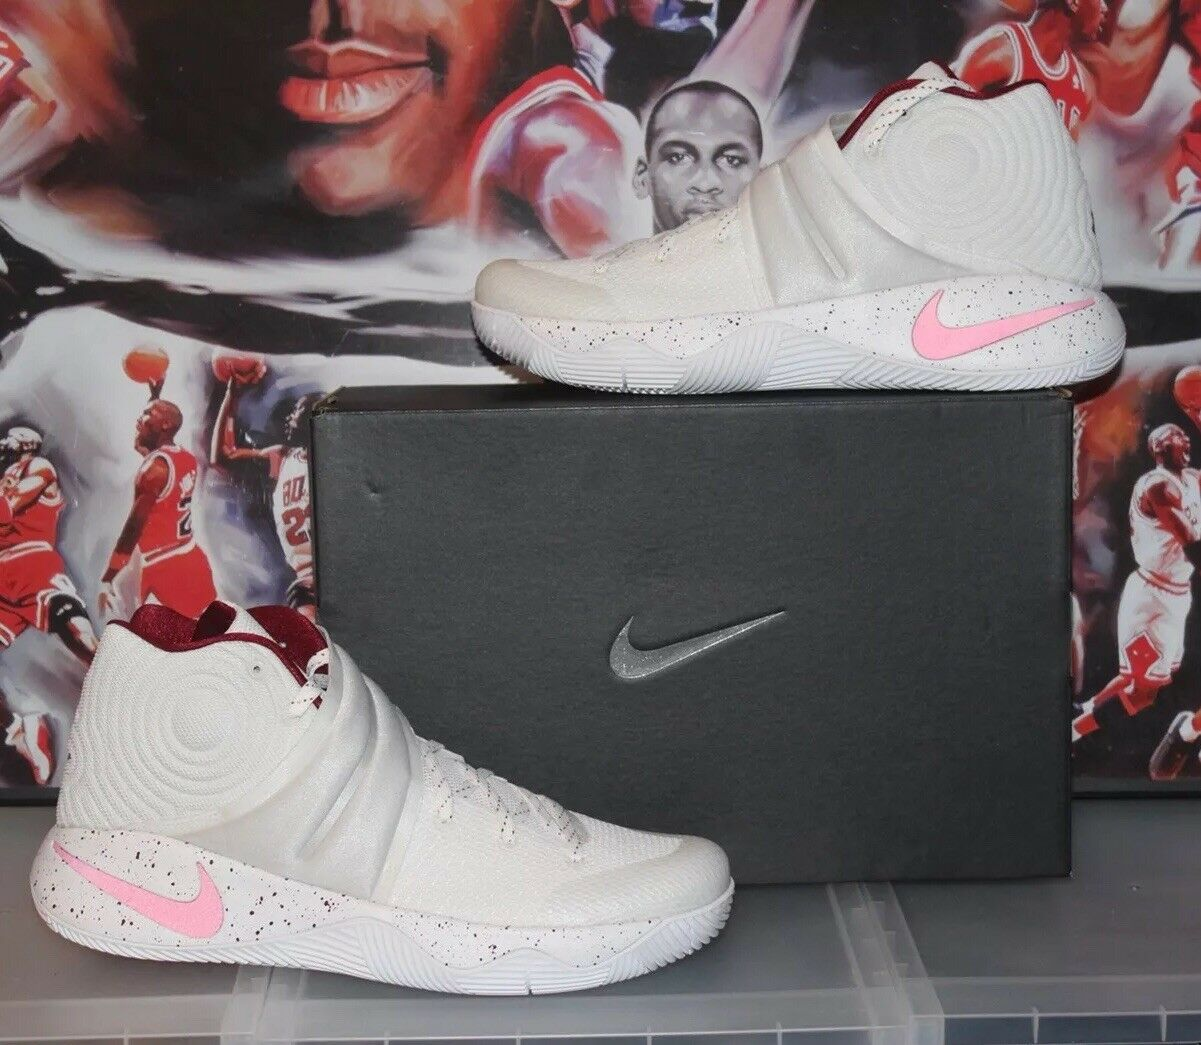 DS Nike Game 6 Unbroken Kyrie 2 Champ Pack NikeID Size 13 Championship 3 5 7